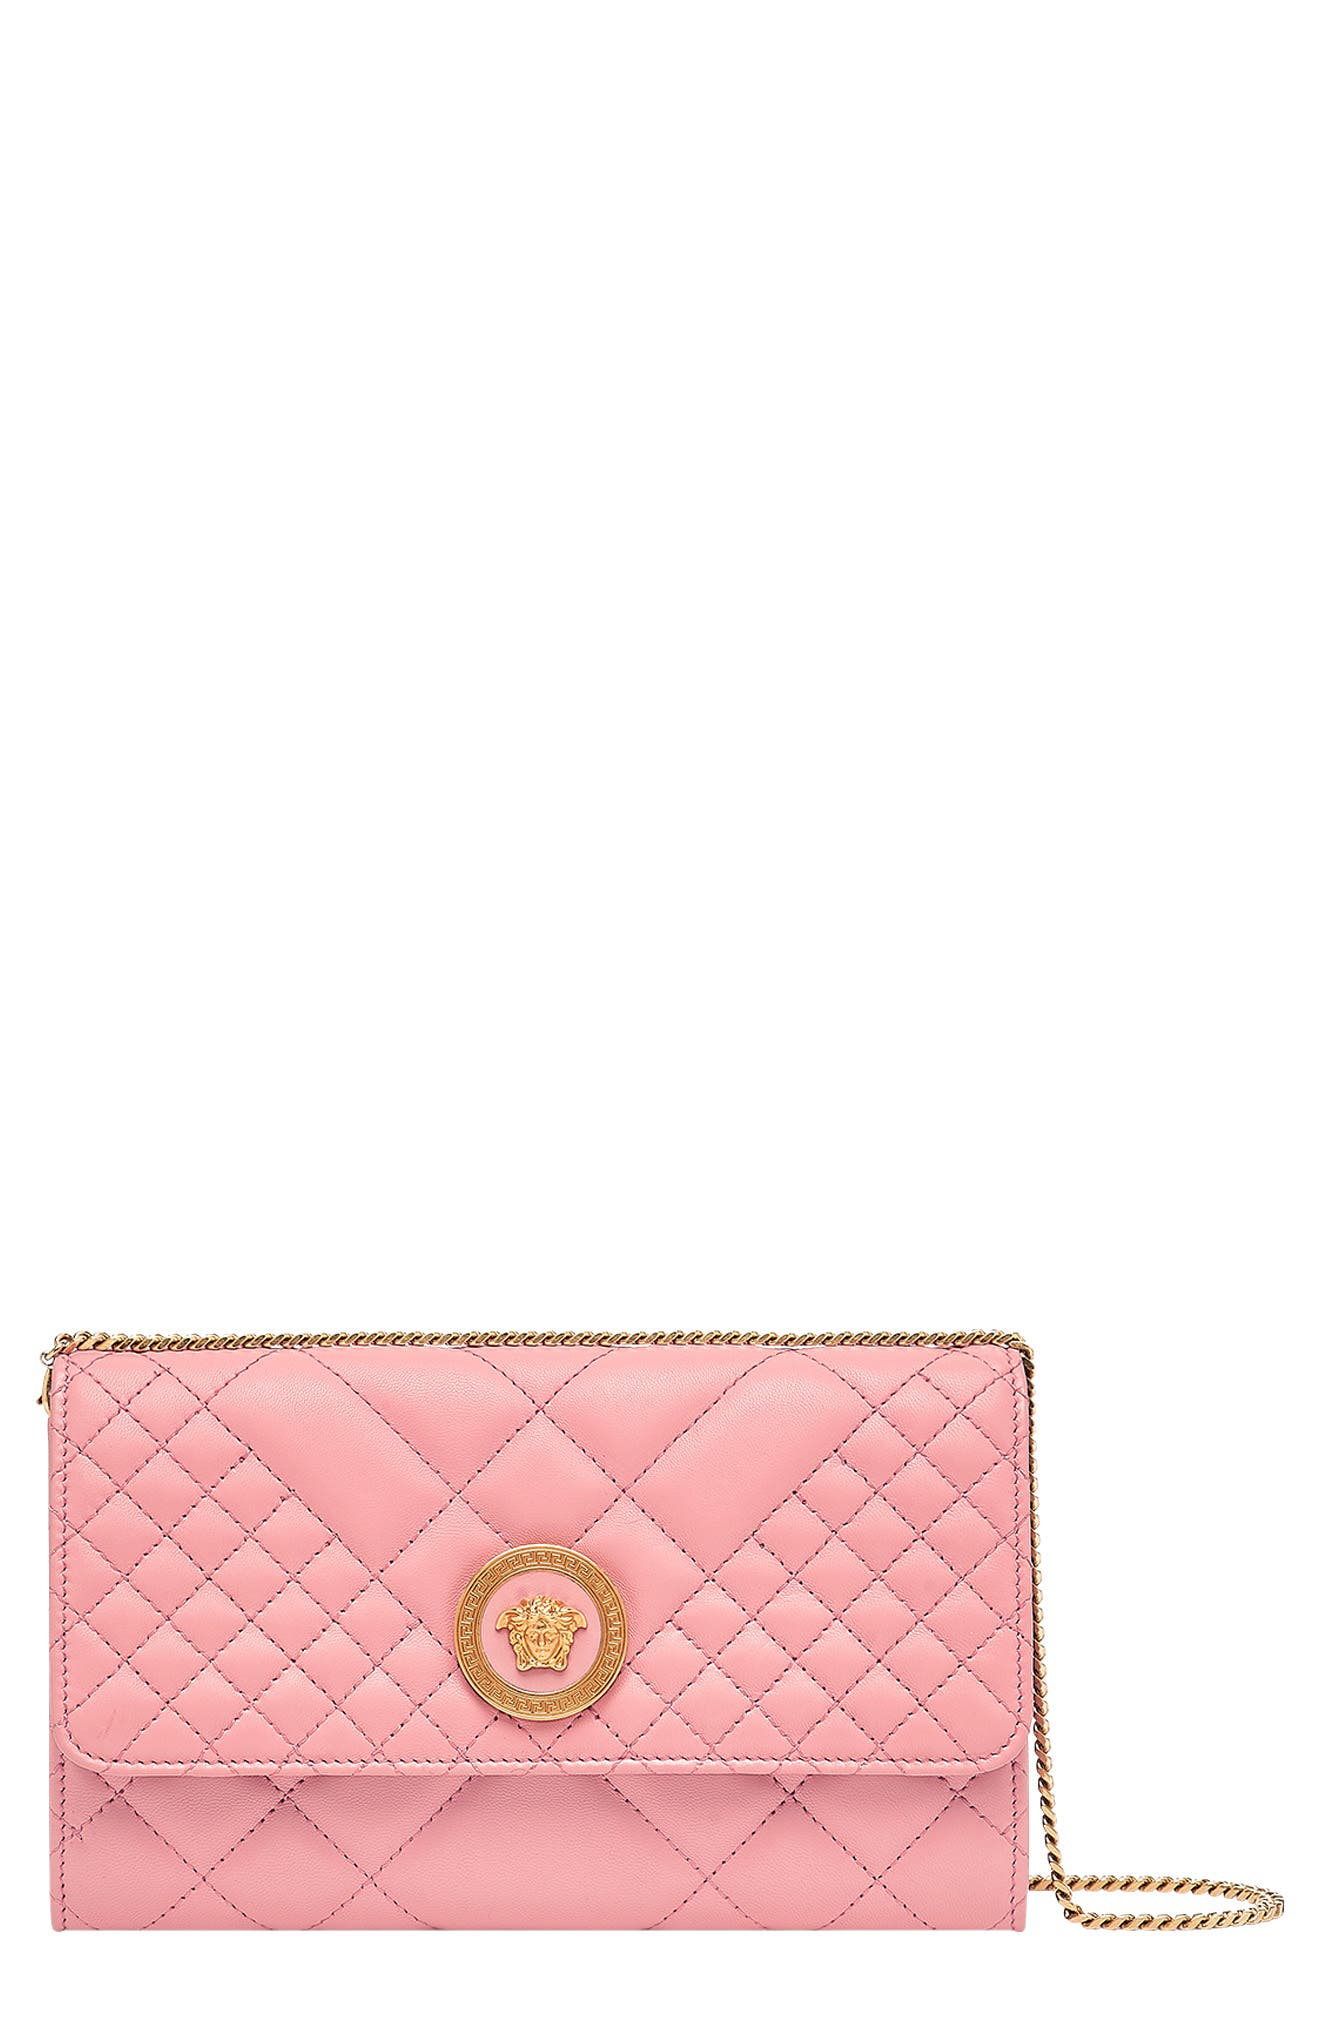 Quilted Leather Wallet on a Chain,                             Main thumbnail 1, color,                             SHELL PINK/ TRIBUTE GOLD